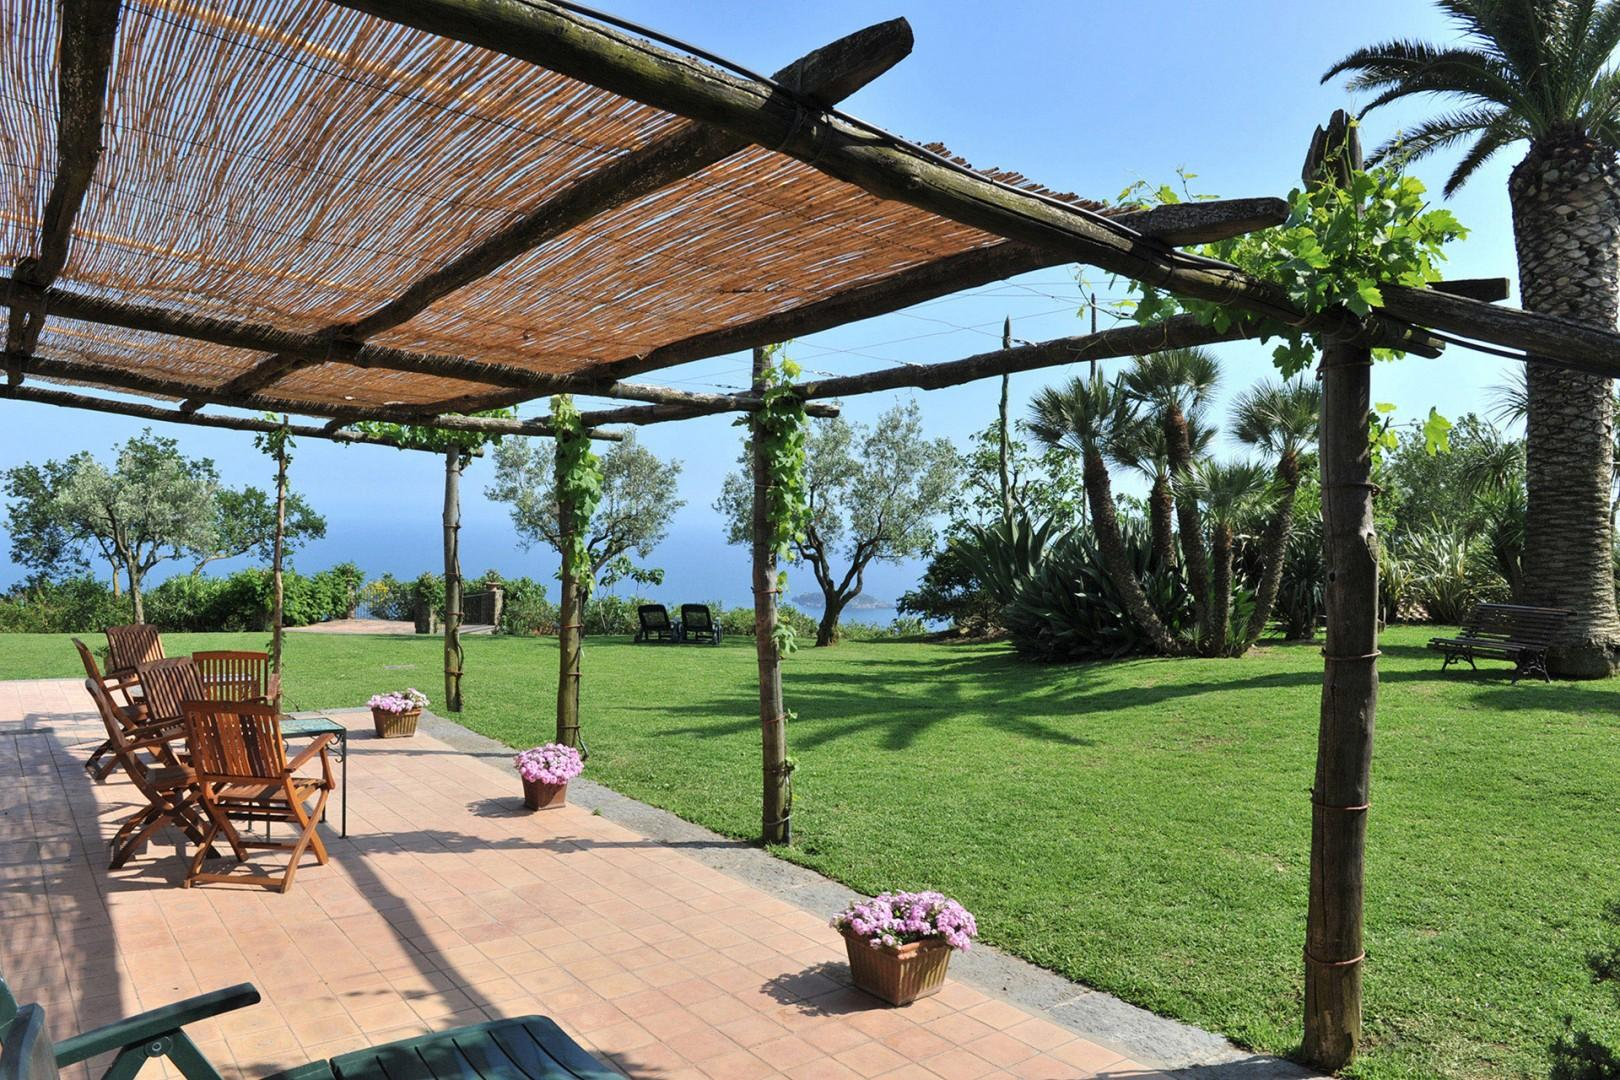 Villa Serena offers many places to relax or congregate like this large covered terrace in front.